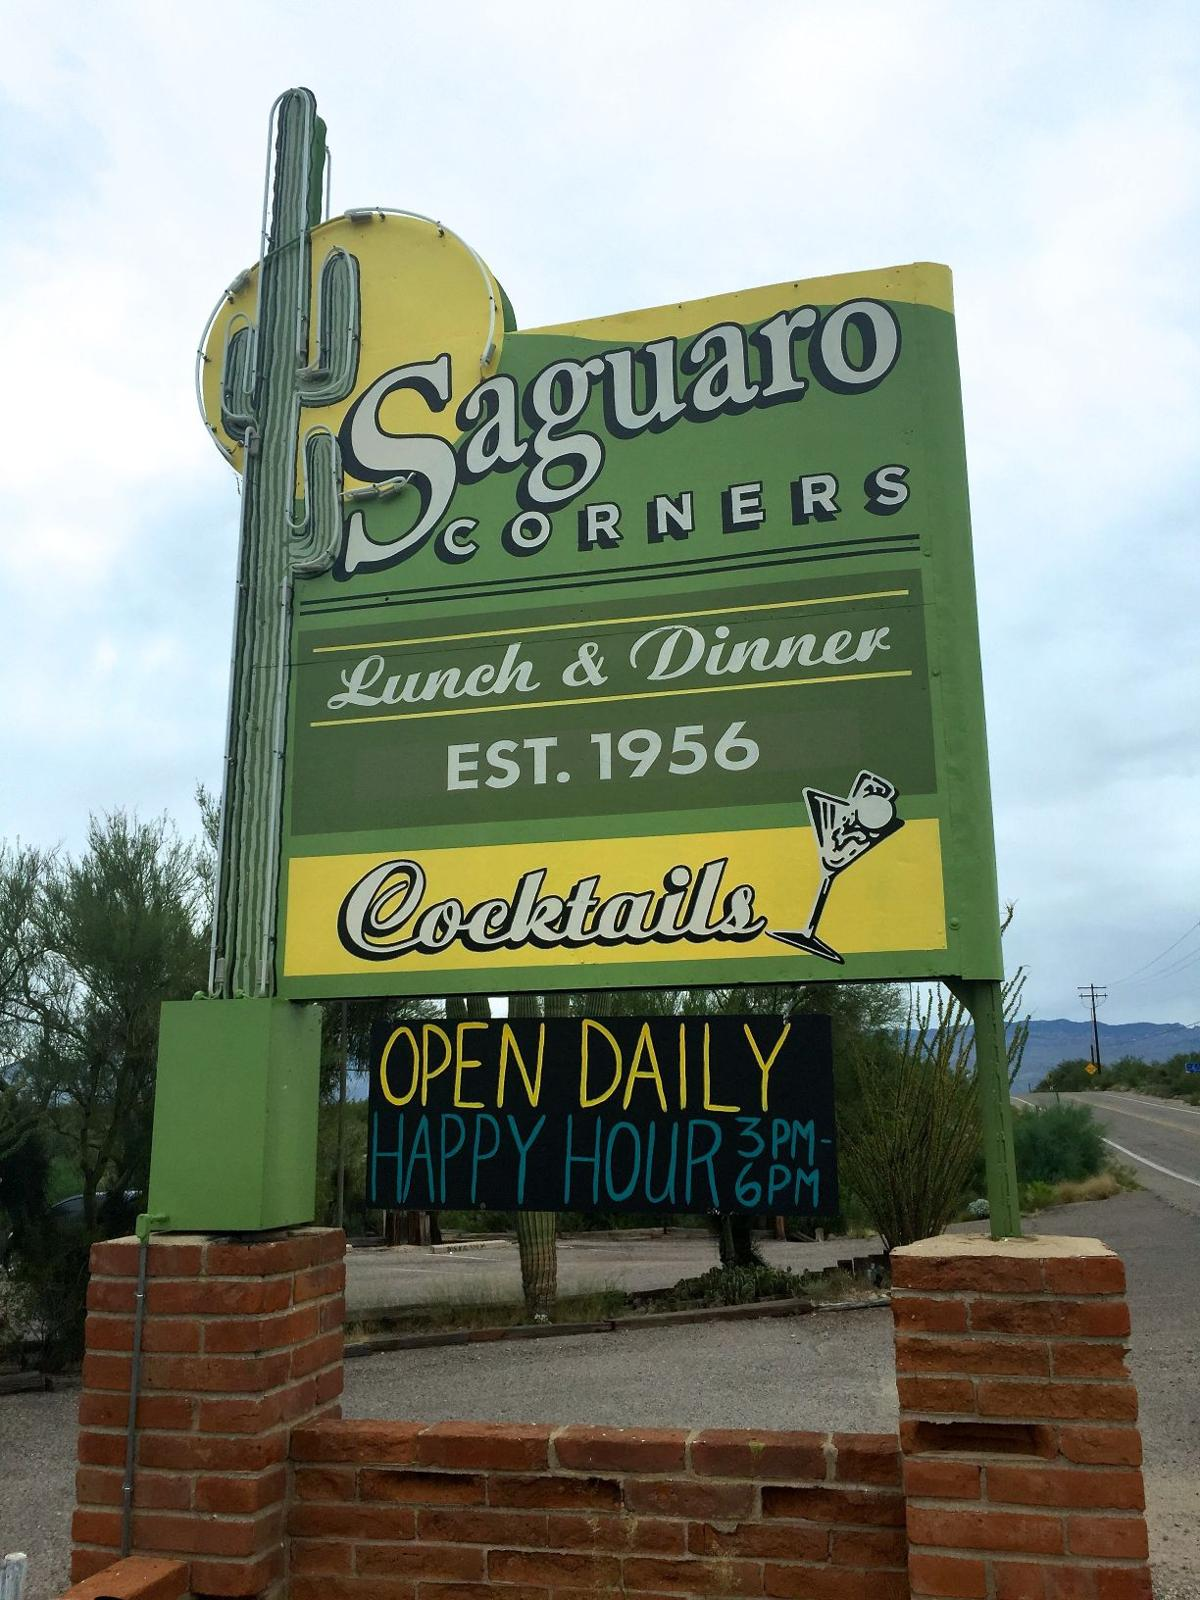 Take a ride tucson saguaro corners sign aiddatafo Image collections